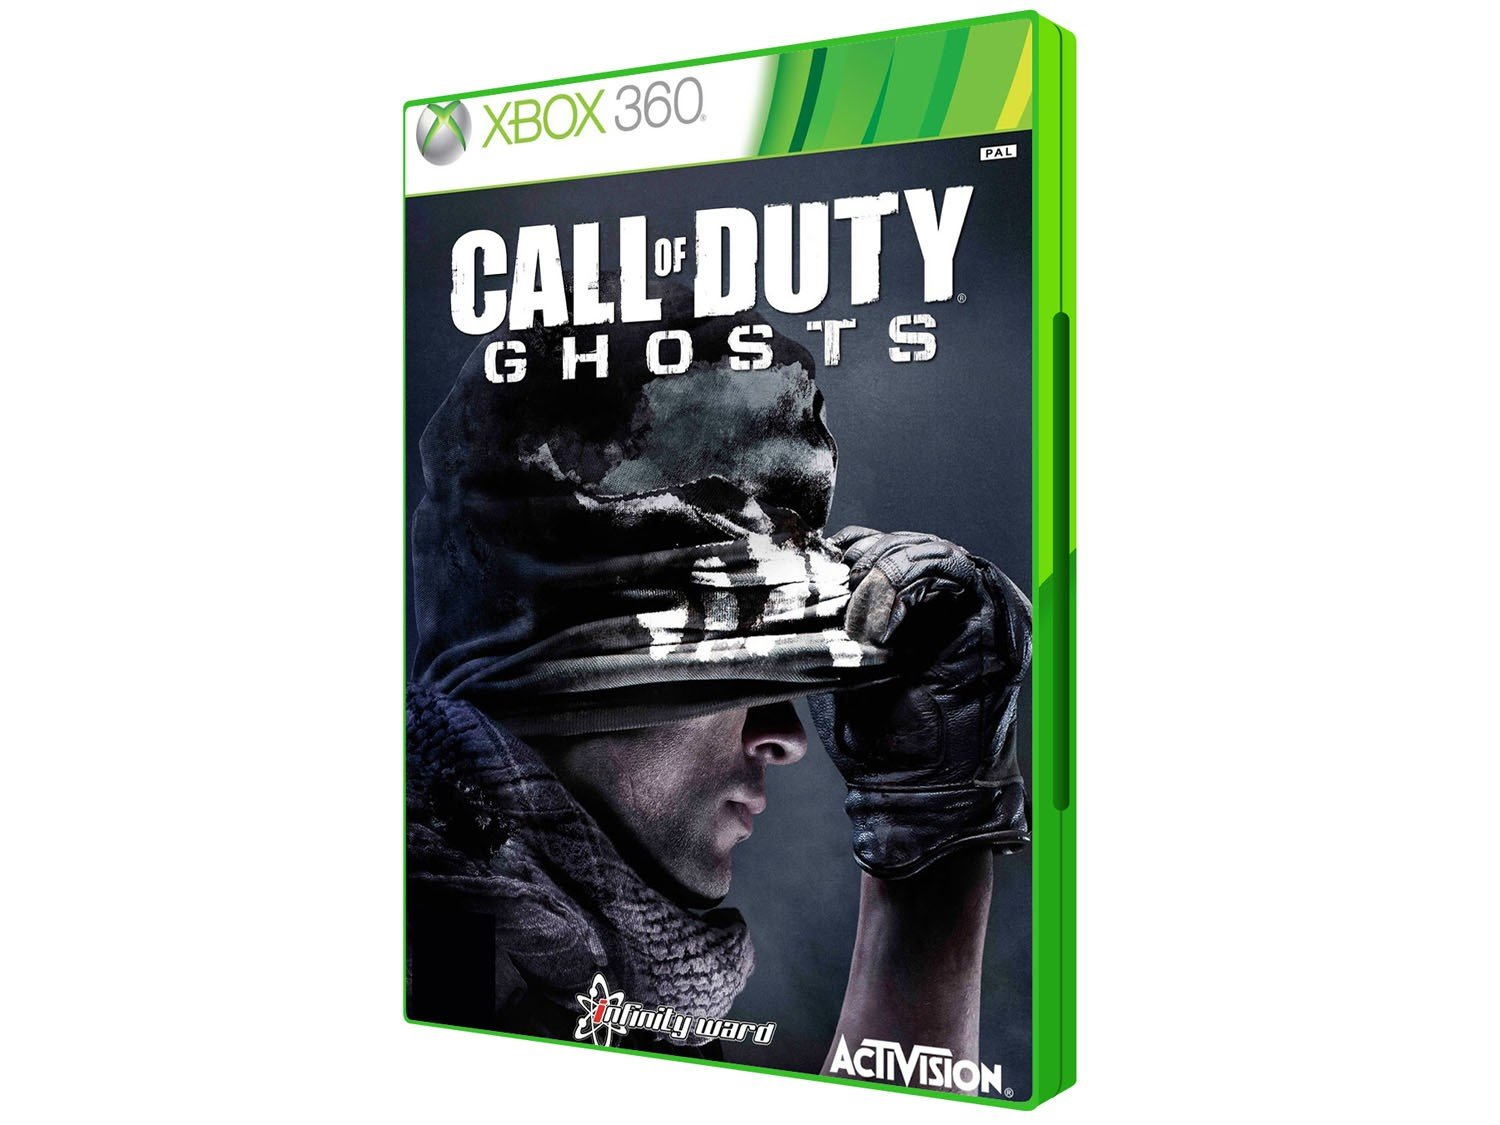 Call Of Duty: Ghosts p  Xbox 360 Activision - Jogos para Xbox 360